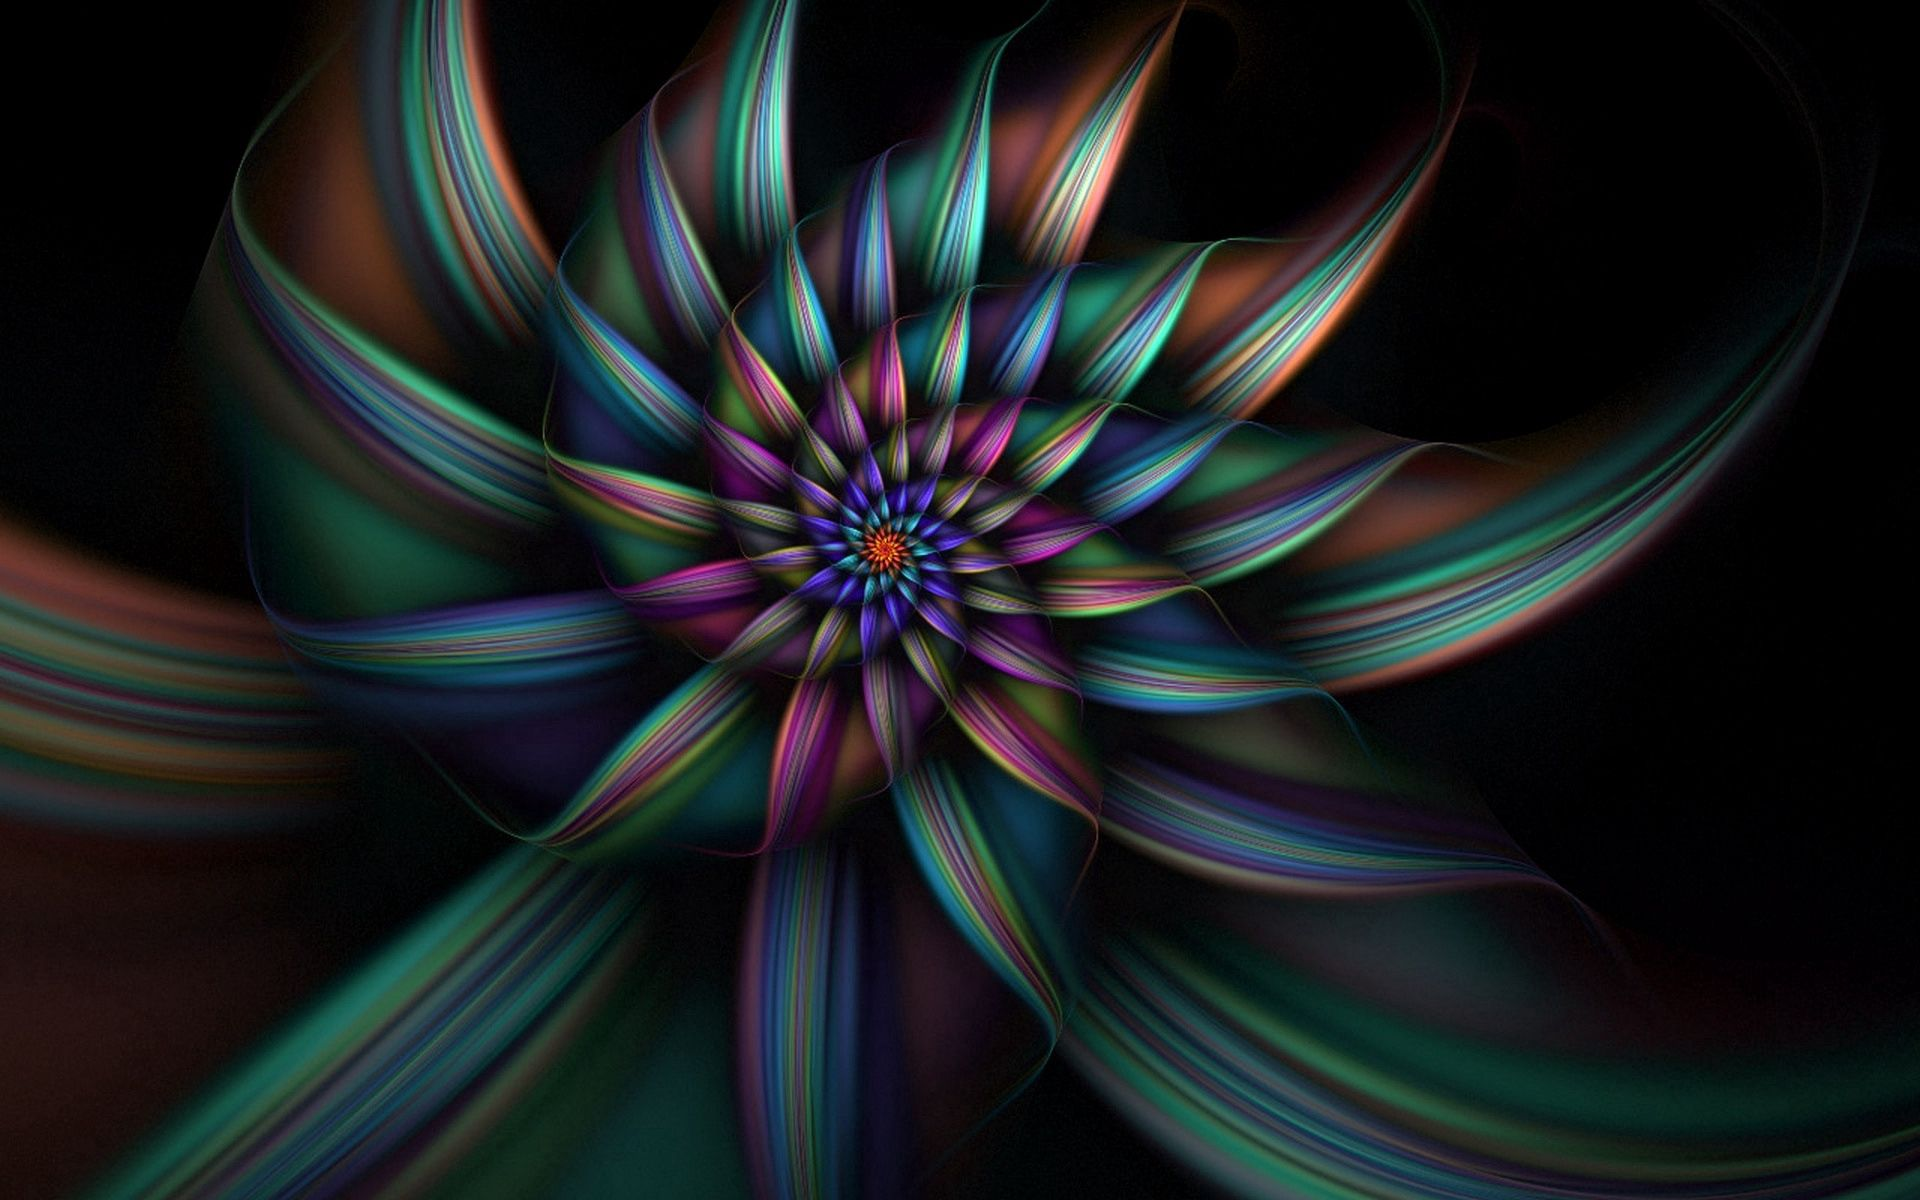 58118 download wallpaper Abstract, Bright, Shine, Light, Flower, Form, Dymovoy, Smoke screensavers and pictures for free